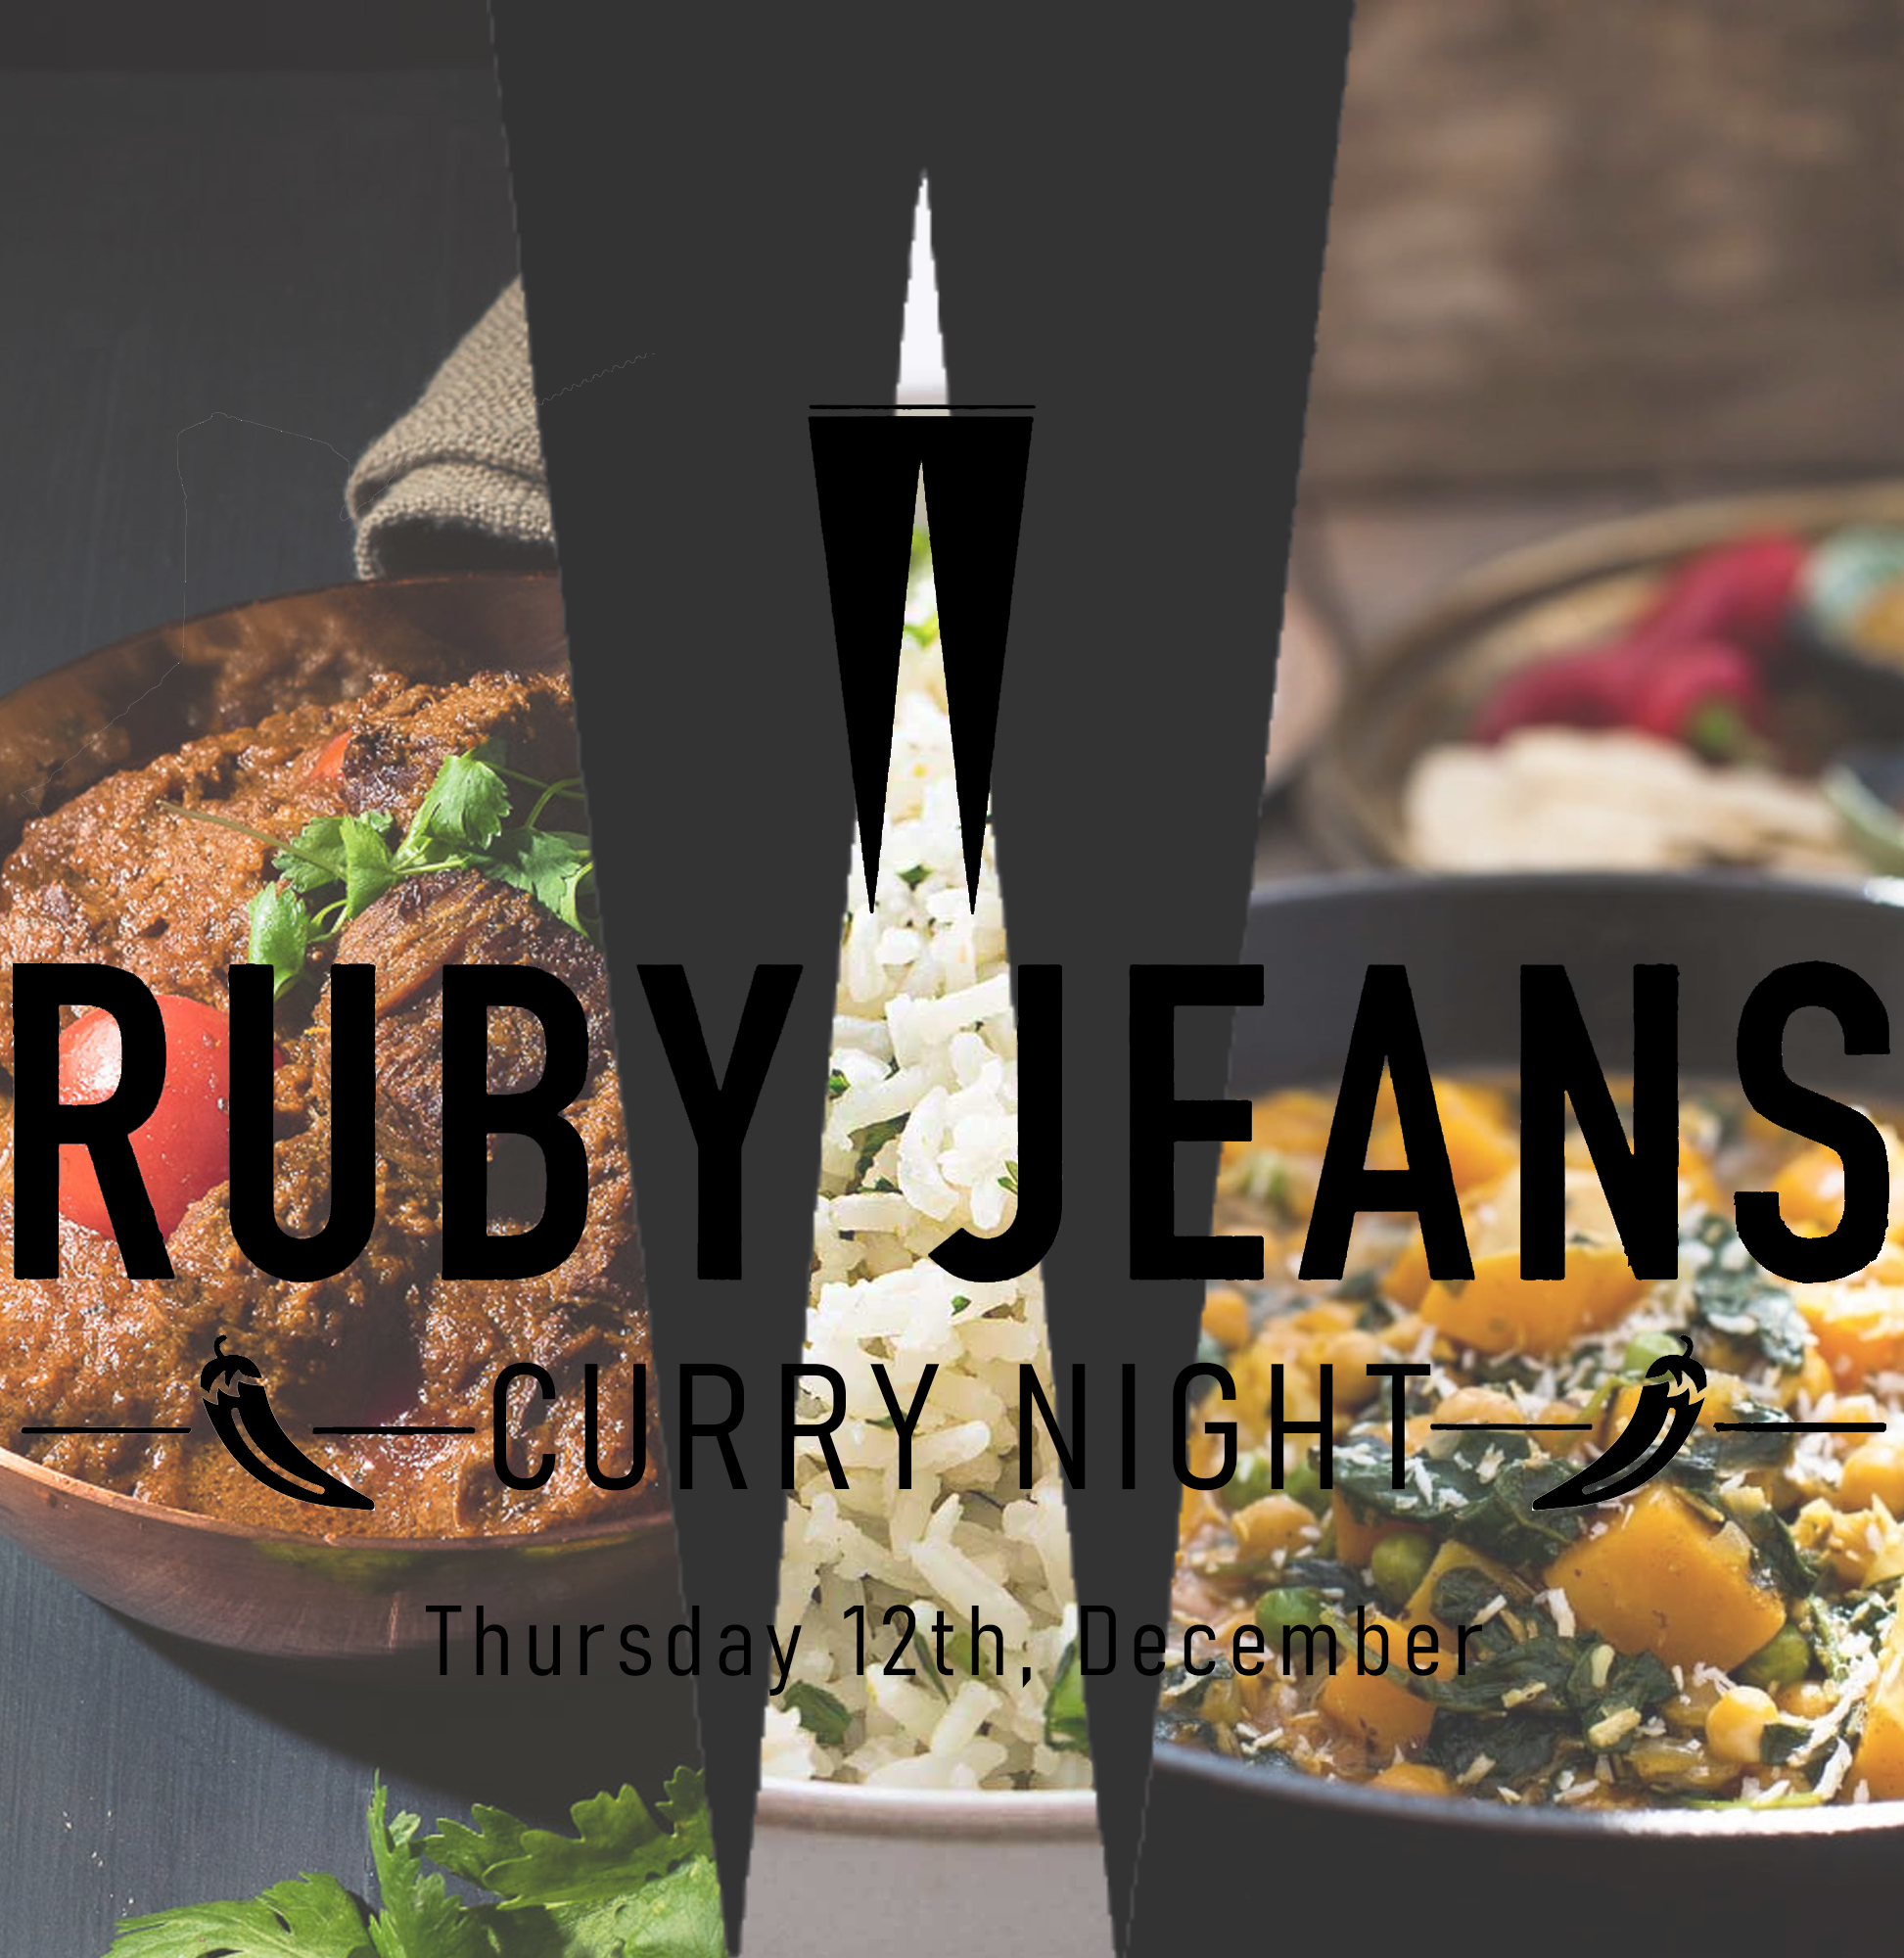 Curry Night - Thursday 12th, December,  7pm